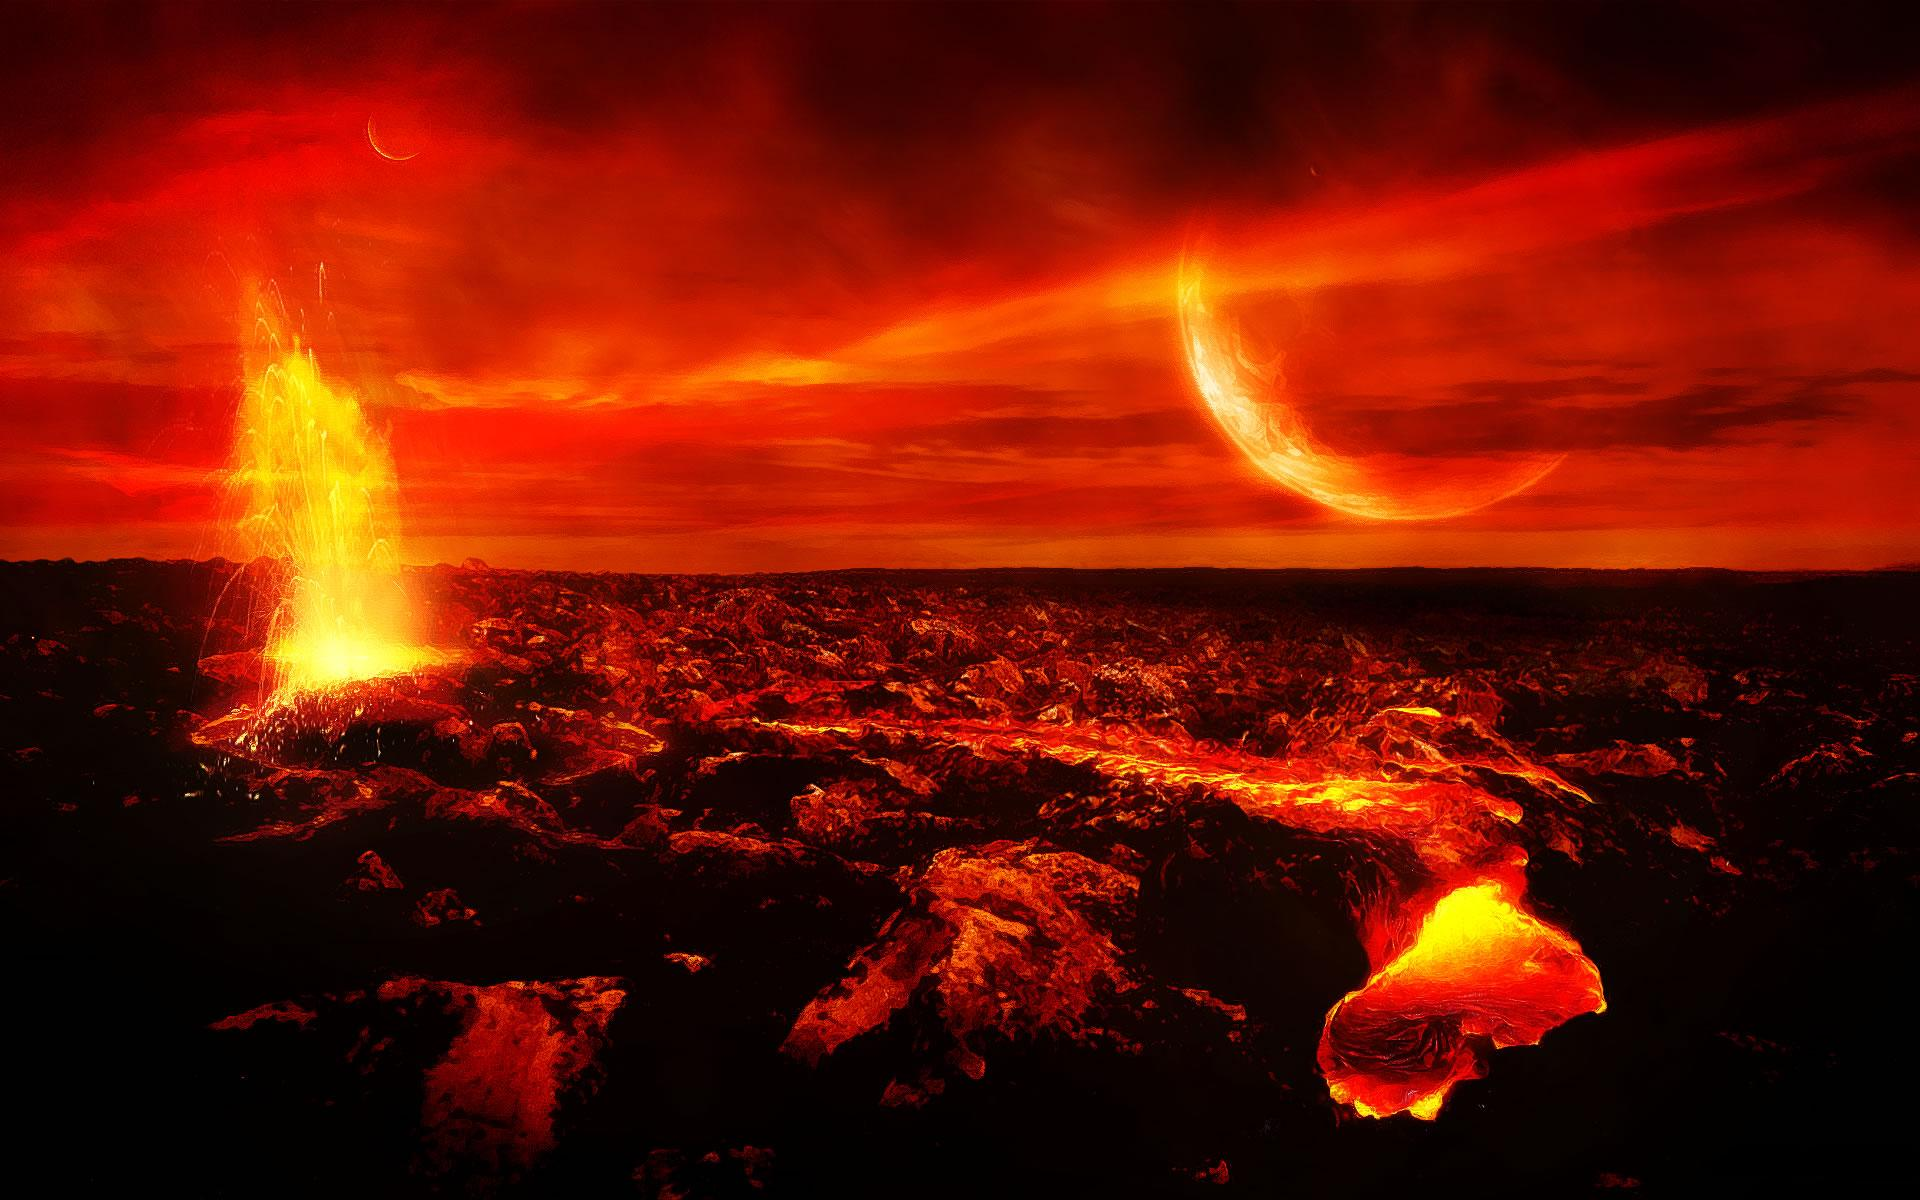 Mass Effect Animated Wallpaper Volcano And Lava Wallpapers Volcano And Lava Stock Photos